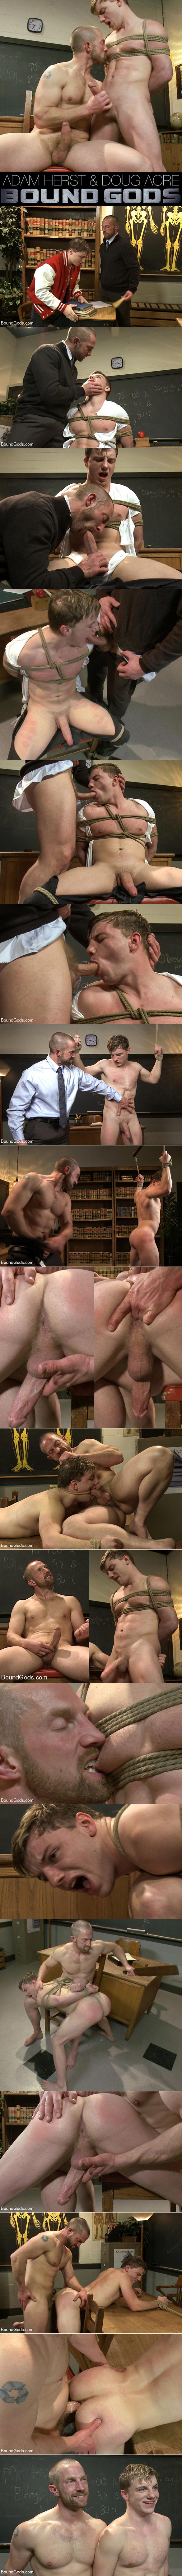 BoundGods: Doug Acre gets bound and fucked by his hot biology teacher Mr. Herst